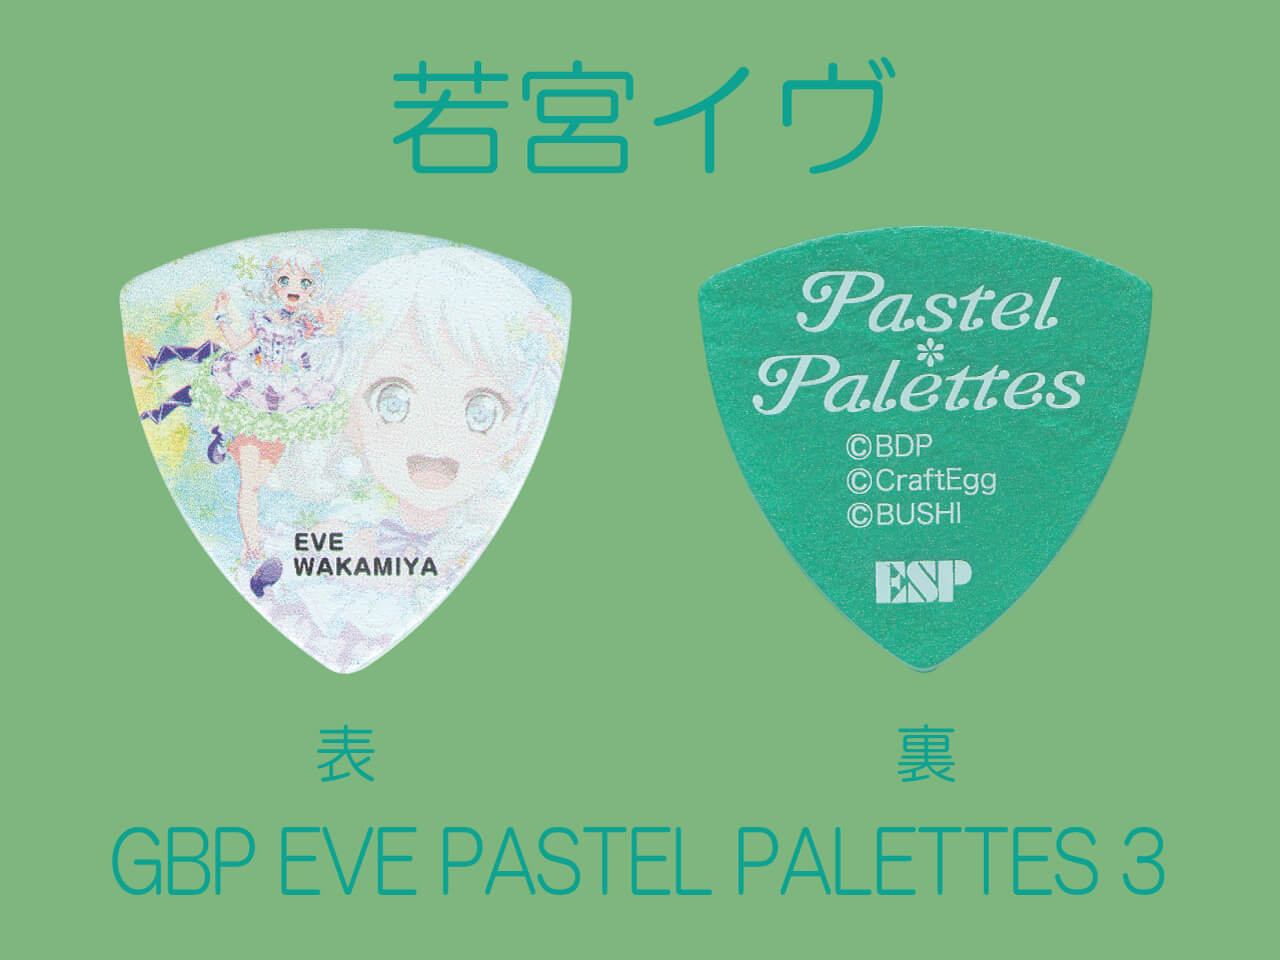 "【ESP×BanG Dream!コラボピック】Pastel*Palettes Character Pick Ver.3 ""若宮イヴ""10枚セット(GBP EVE PASTEL PALETTES 3)"